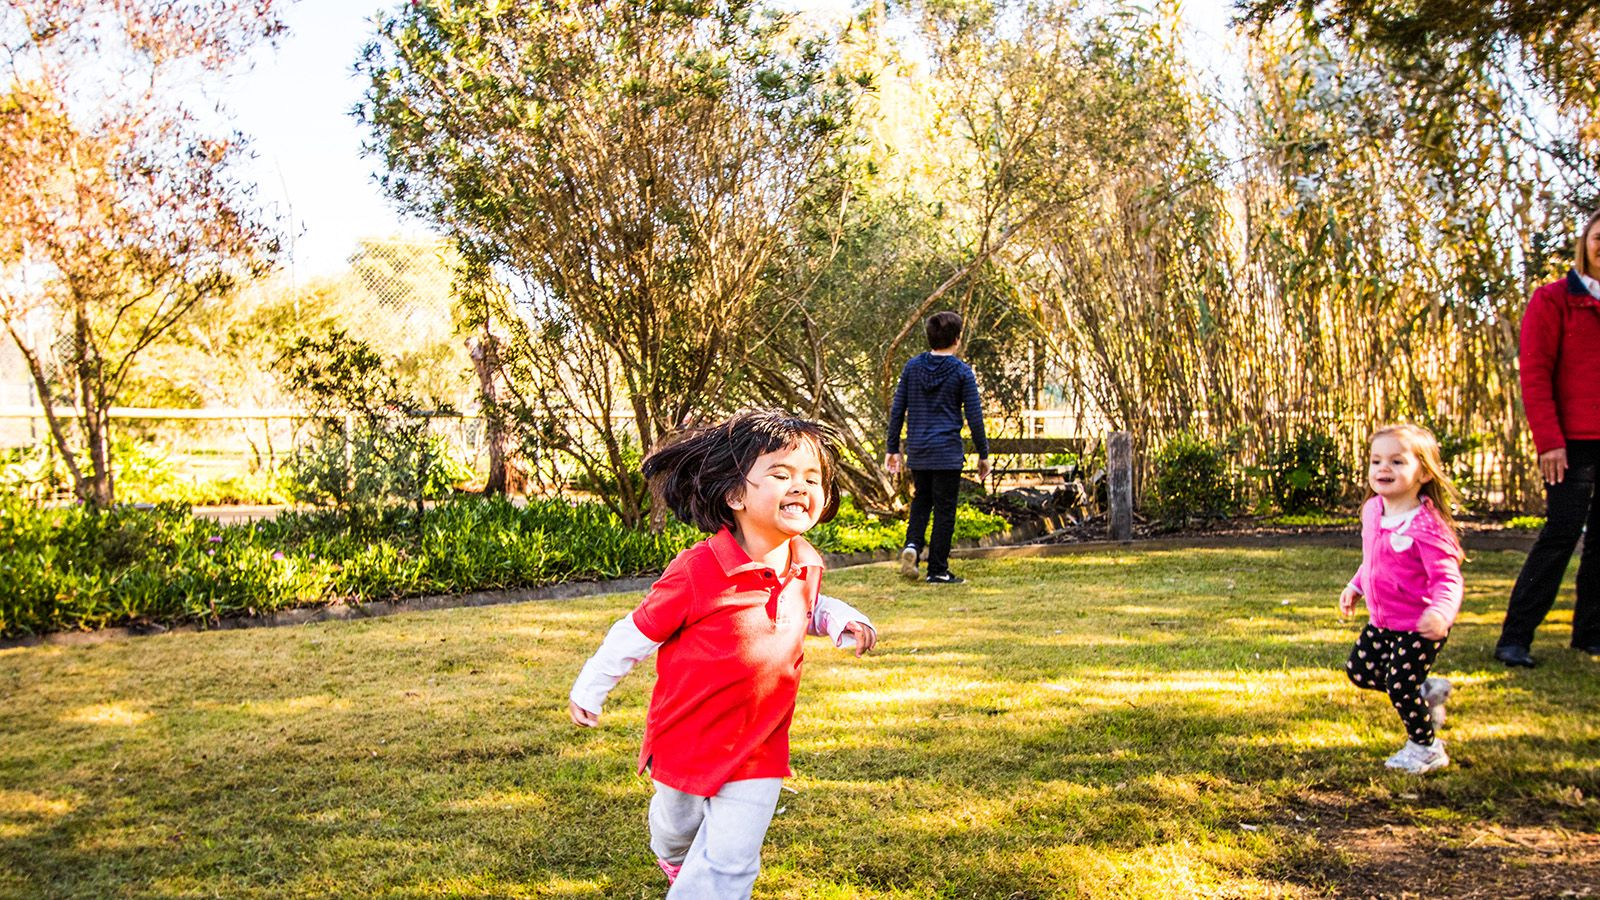 Two young children in bright clothing running outside on the grass banner image